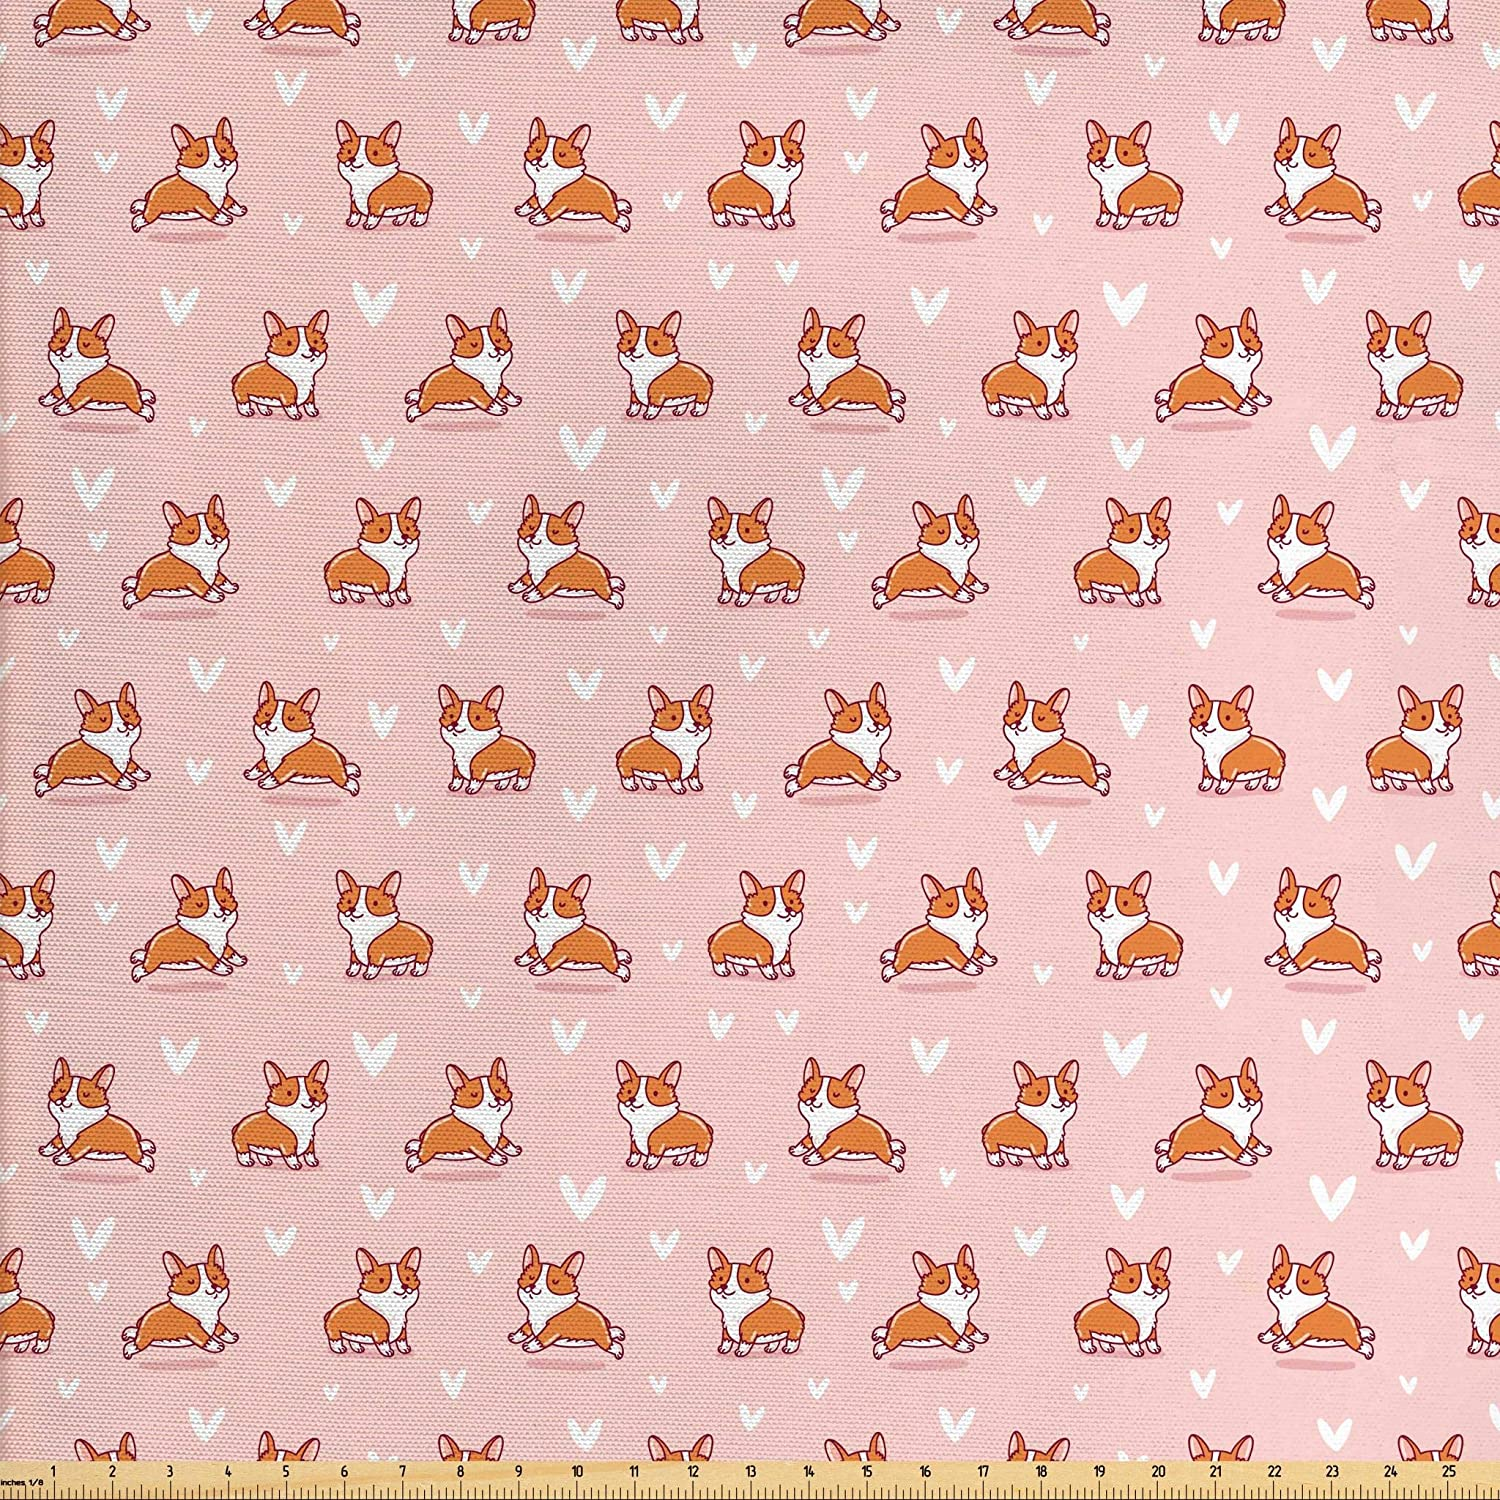 Ambesonne Dog Lover Fabric by The Yard, Cute Little Corgi Jumping Running and Standing Cartoon Hearts Background, Decorative Fabric for Upholstery and Home Accents, 3 Yards, Coral Orange White